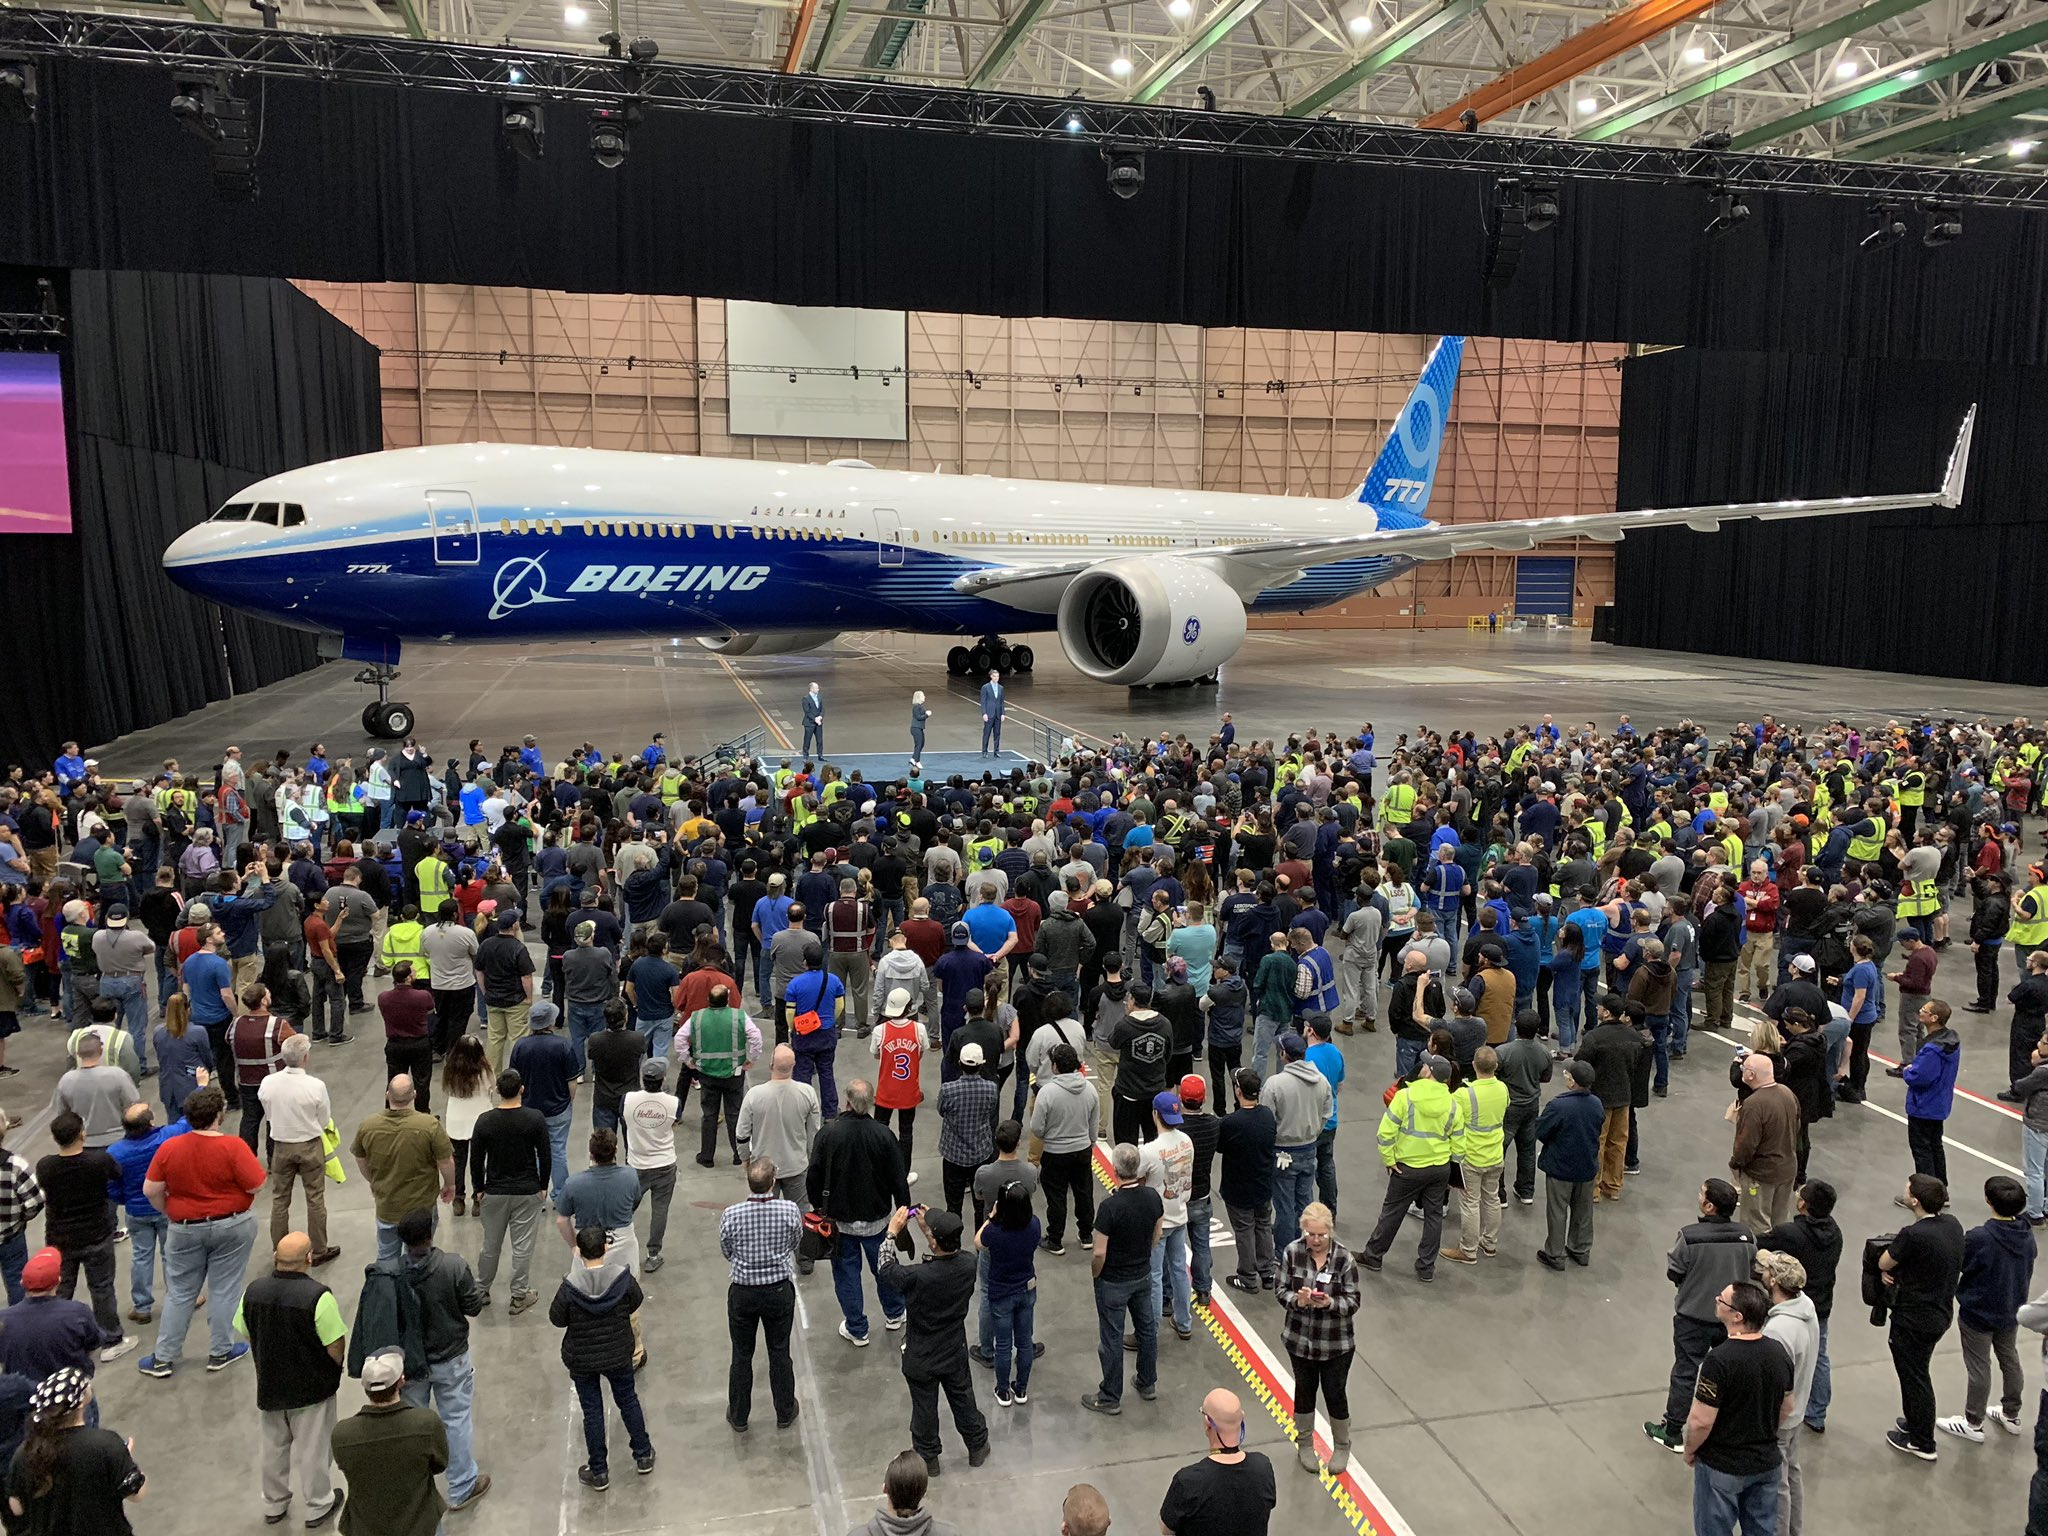 The Employee Reveal of the Boeing 777X n779xw